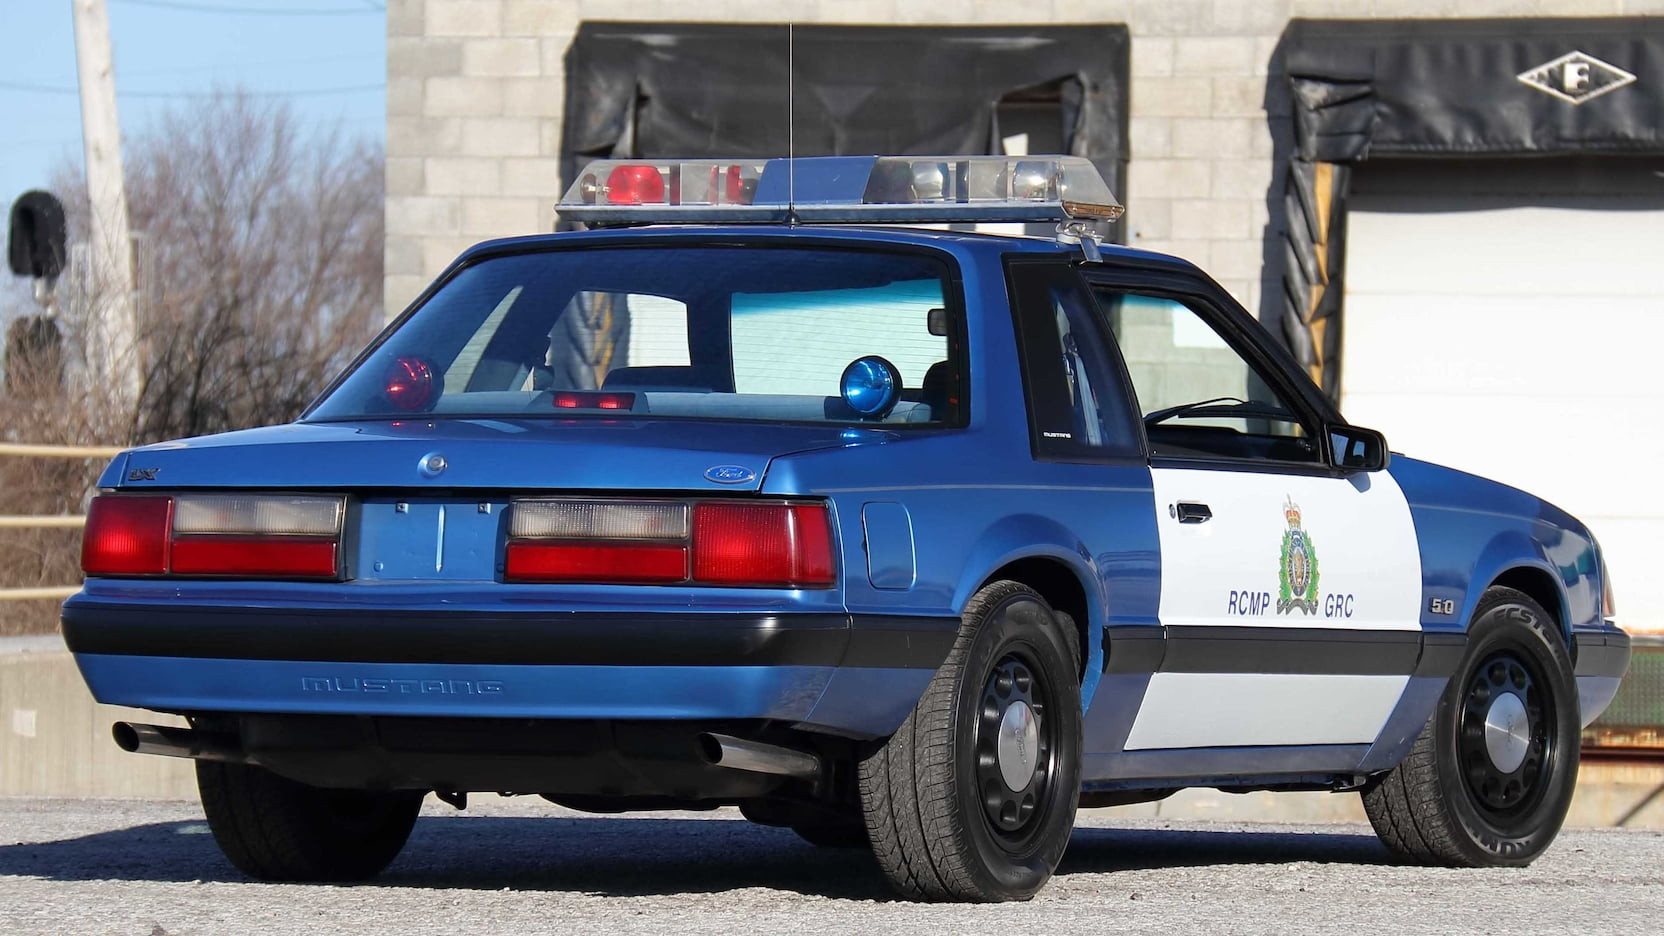 Ford Mustang SSP Police Car - Ford Mustang SSP Police Car